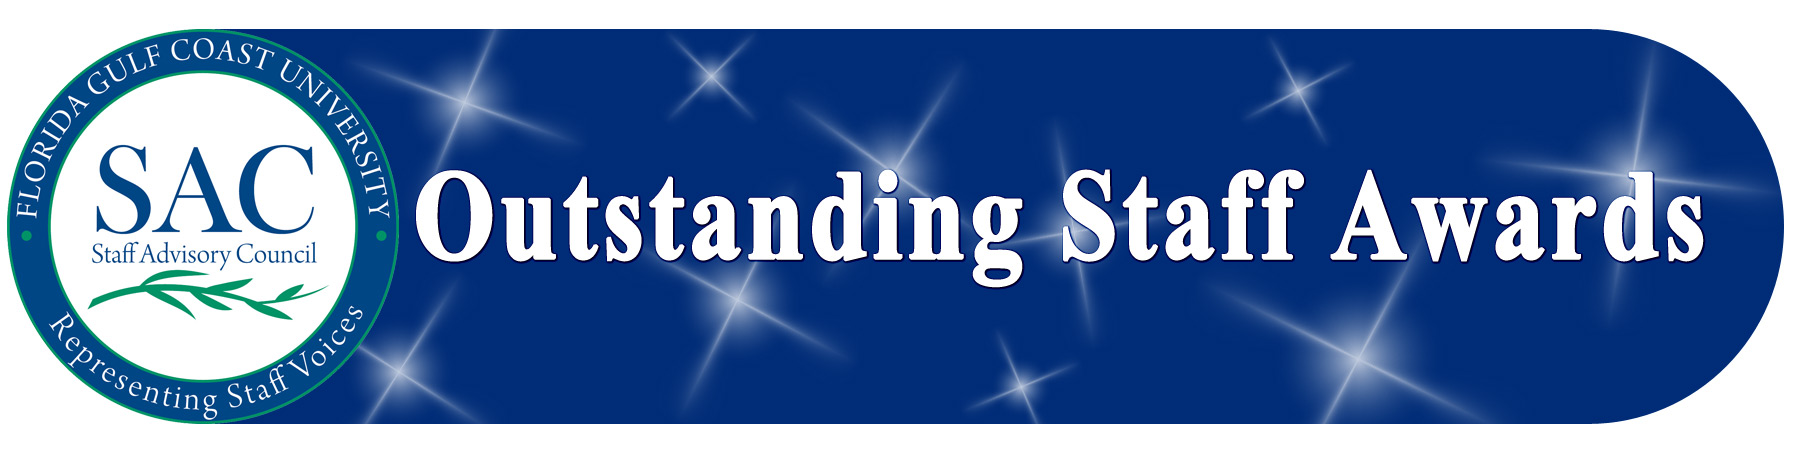 Oustanding Staff Awards